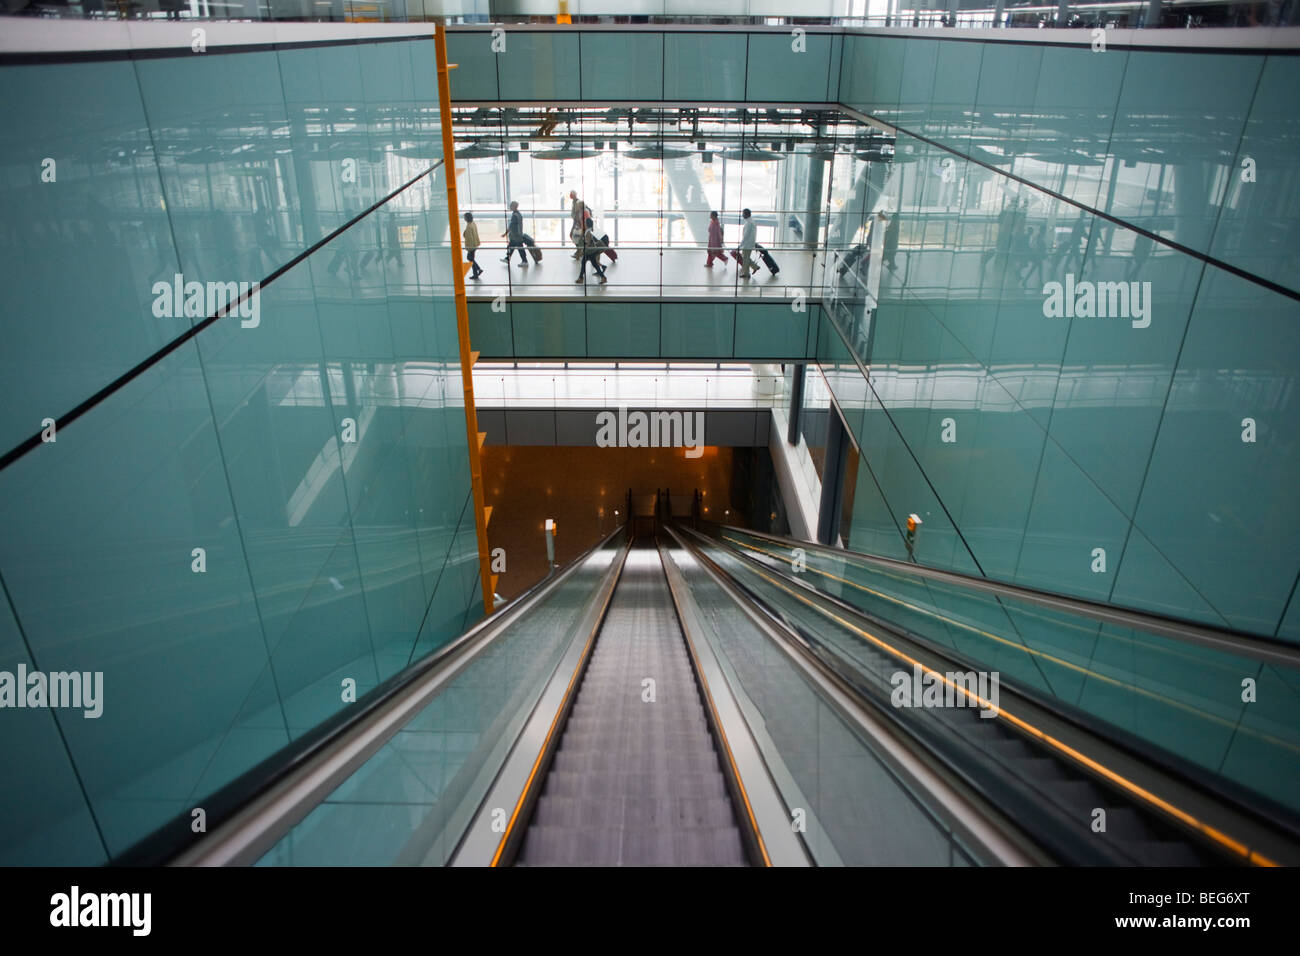 Long escalator and arriving passengers and airport architecture at Heathrow's Terminal 5. - Stock Image